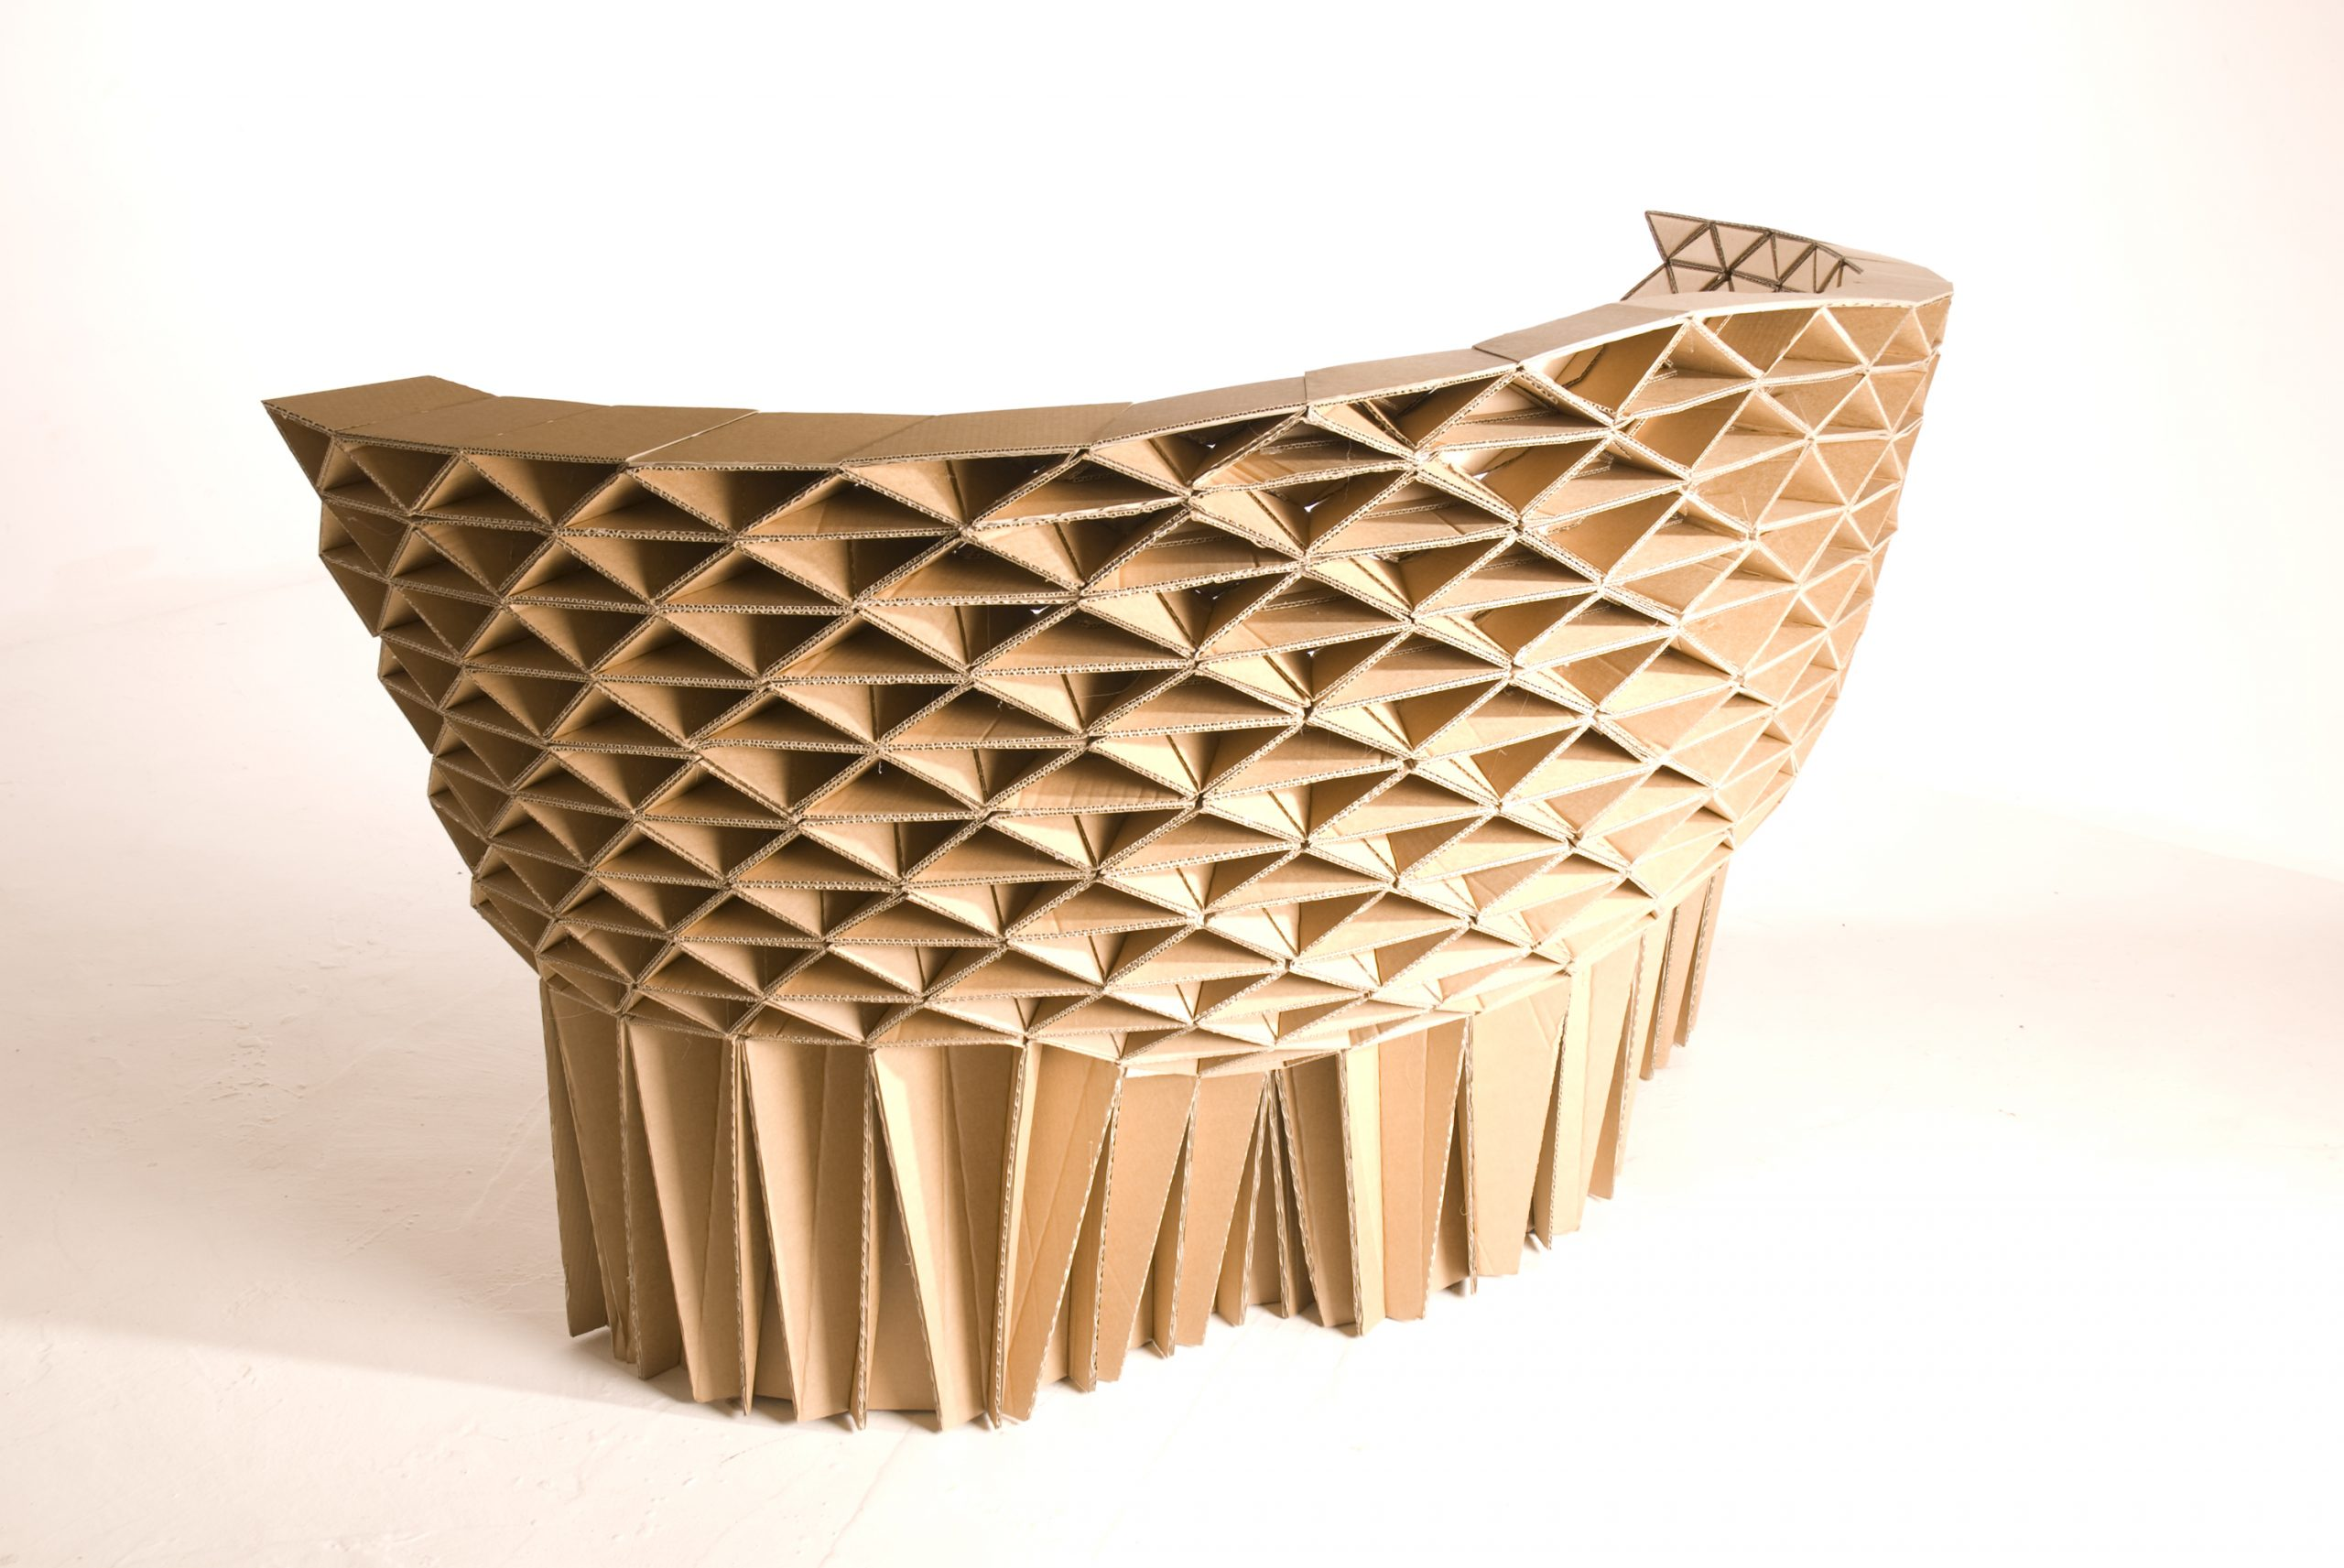 Back of a creatively designed cardboard sofa created using thousands of triangular components. Part of the honeycomb collection by design studio Lazerian